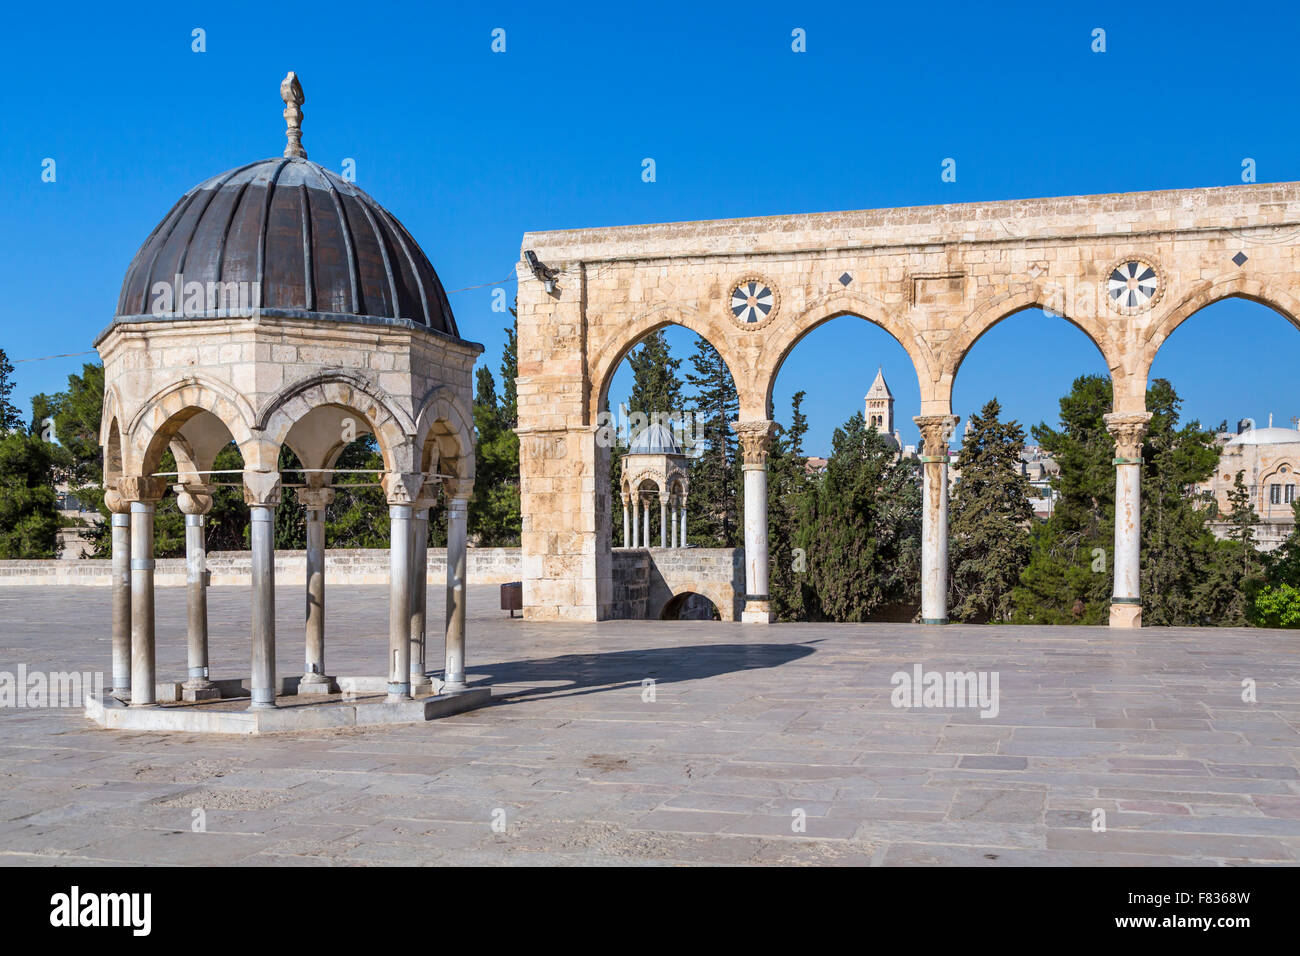 Various structures and cupolas on the Temple Mount in Jerusalem, Israel, Middle East. - Stock Image